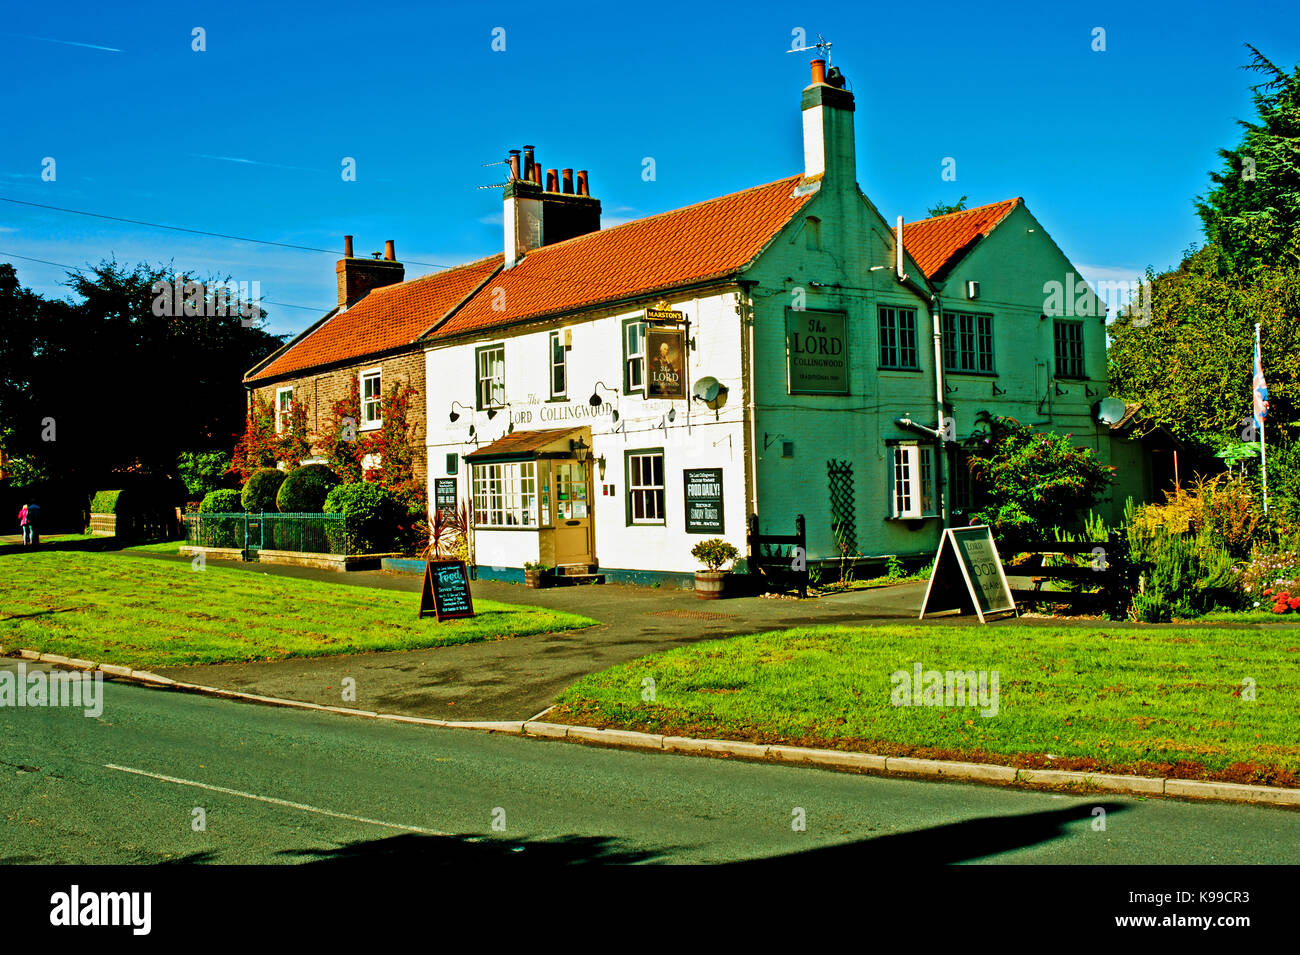 The Lord Collingwood, Upper poppleton, North Yorkshire Stock Photo